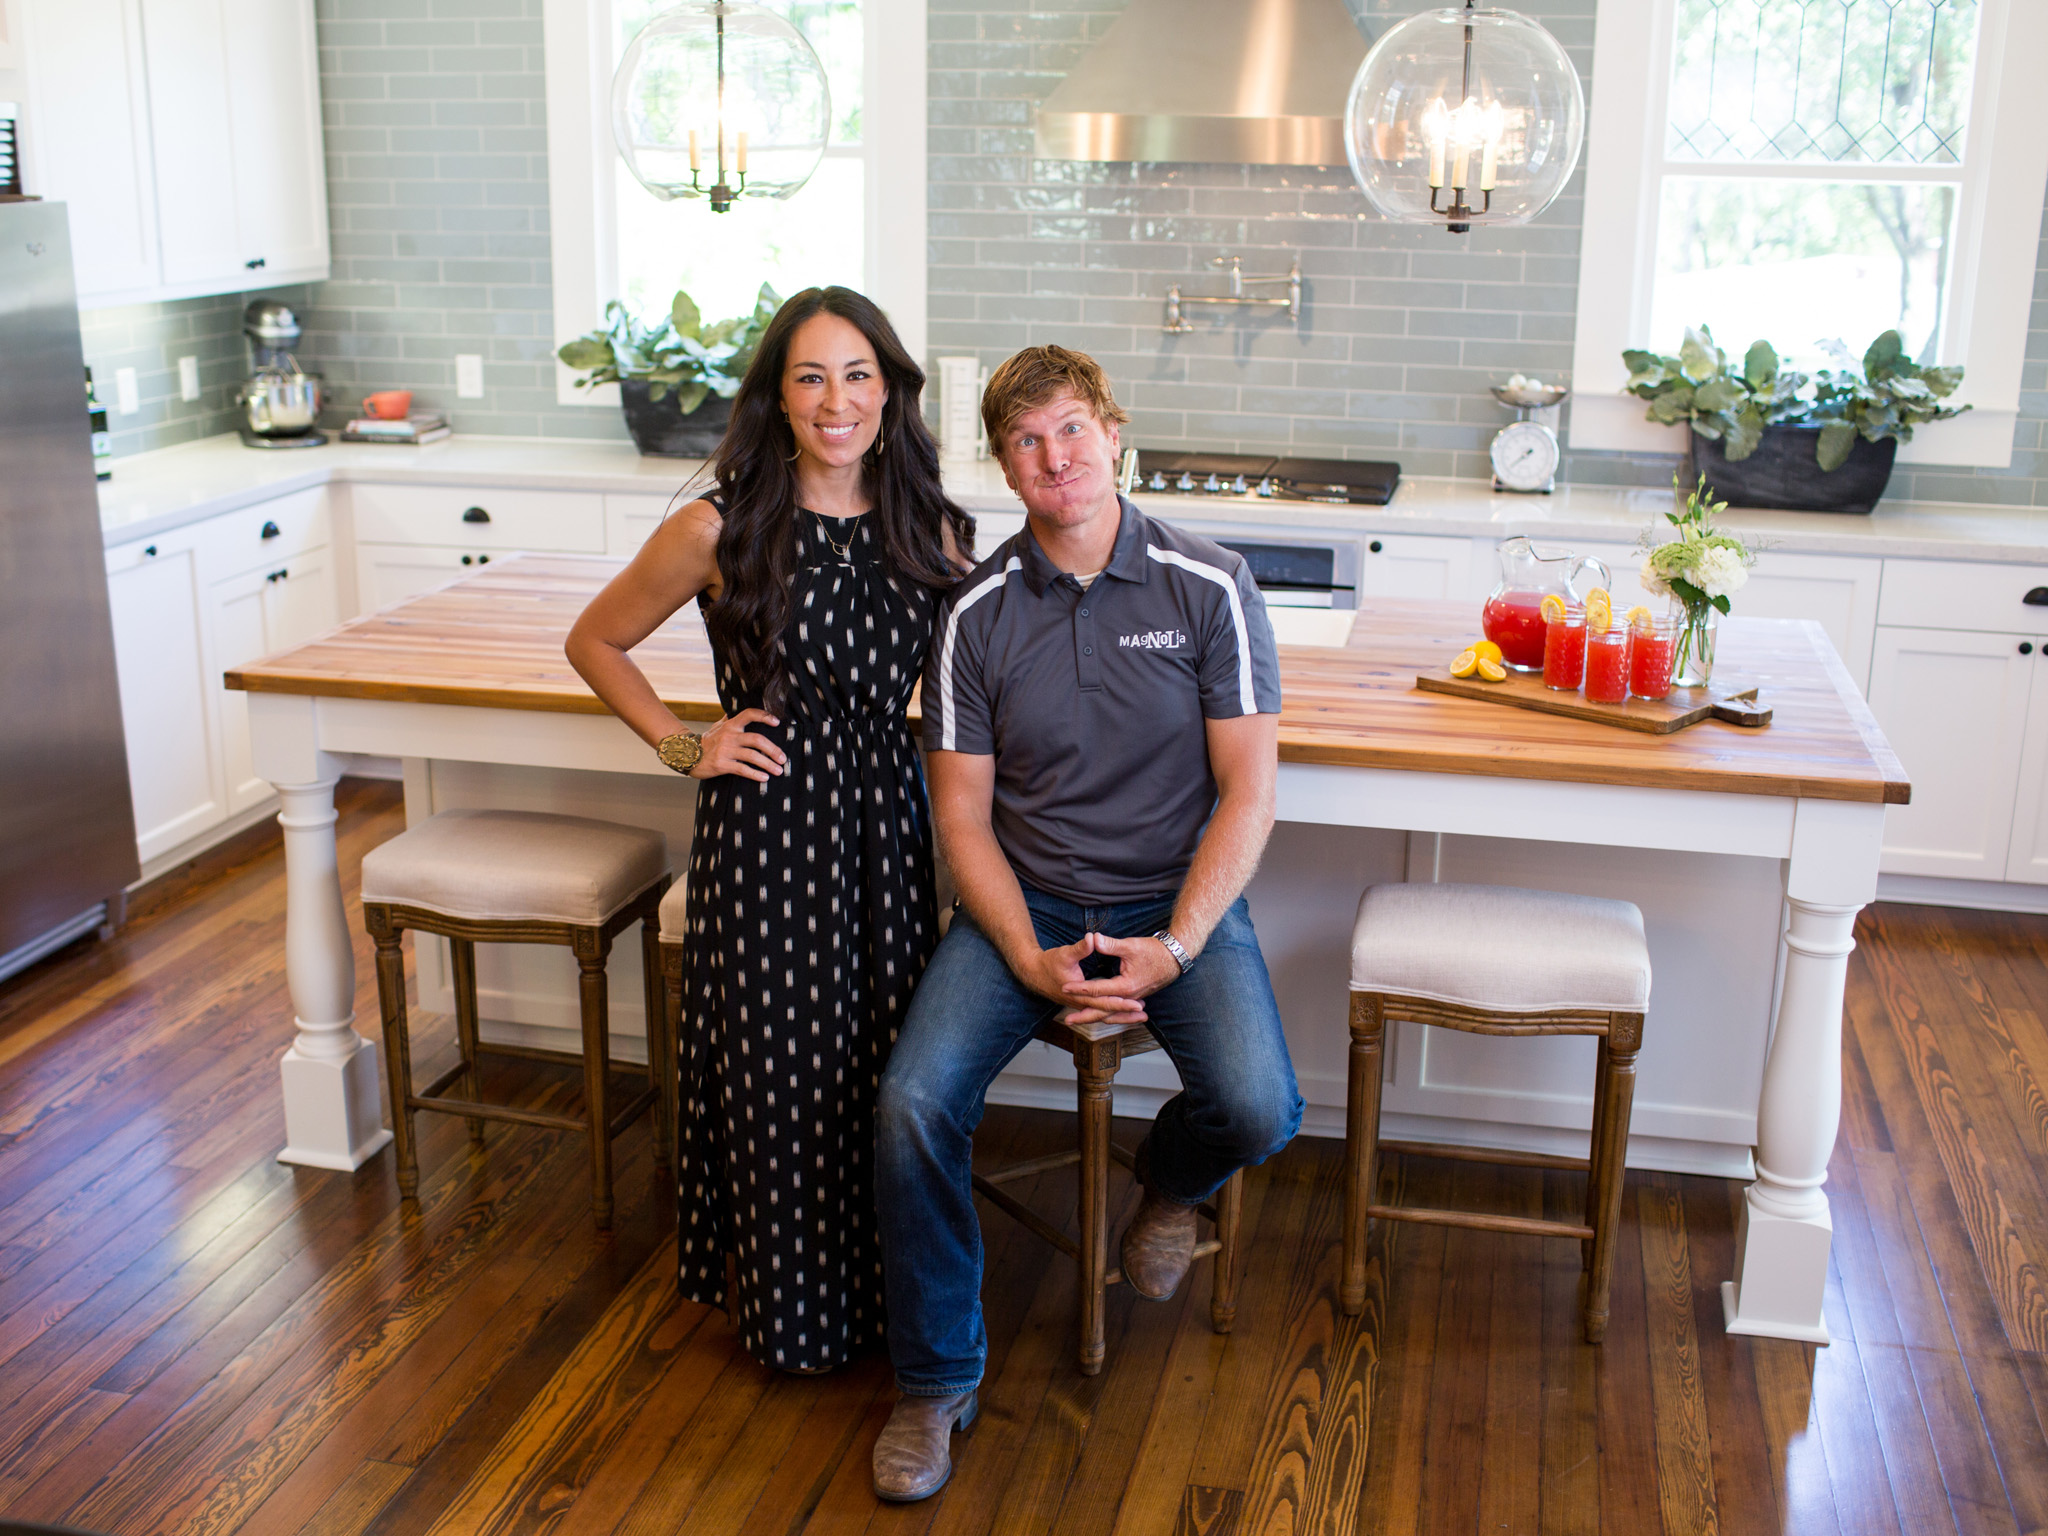 Homes Featured On Hgtv S Fixer Upper Drawing Crazy